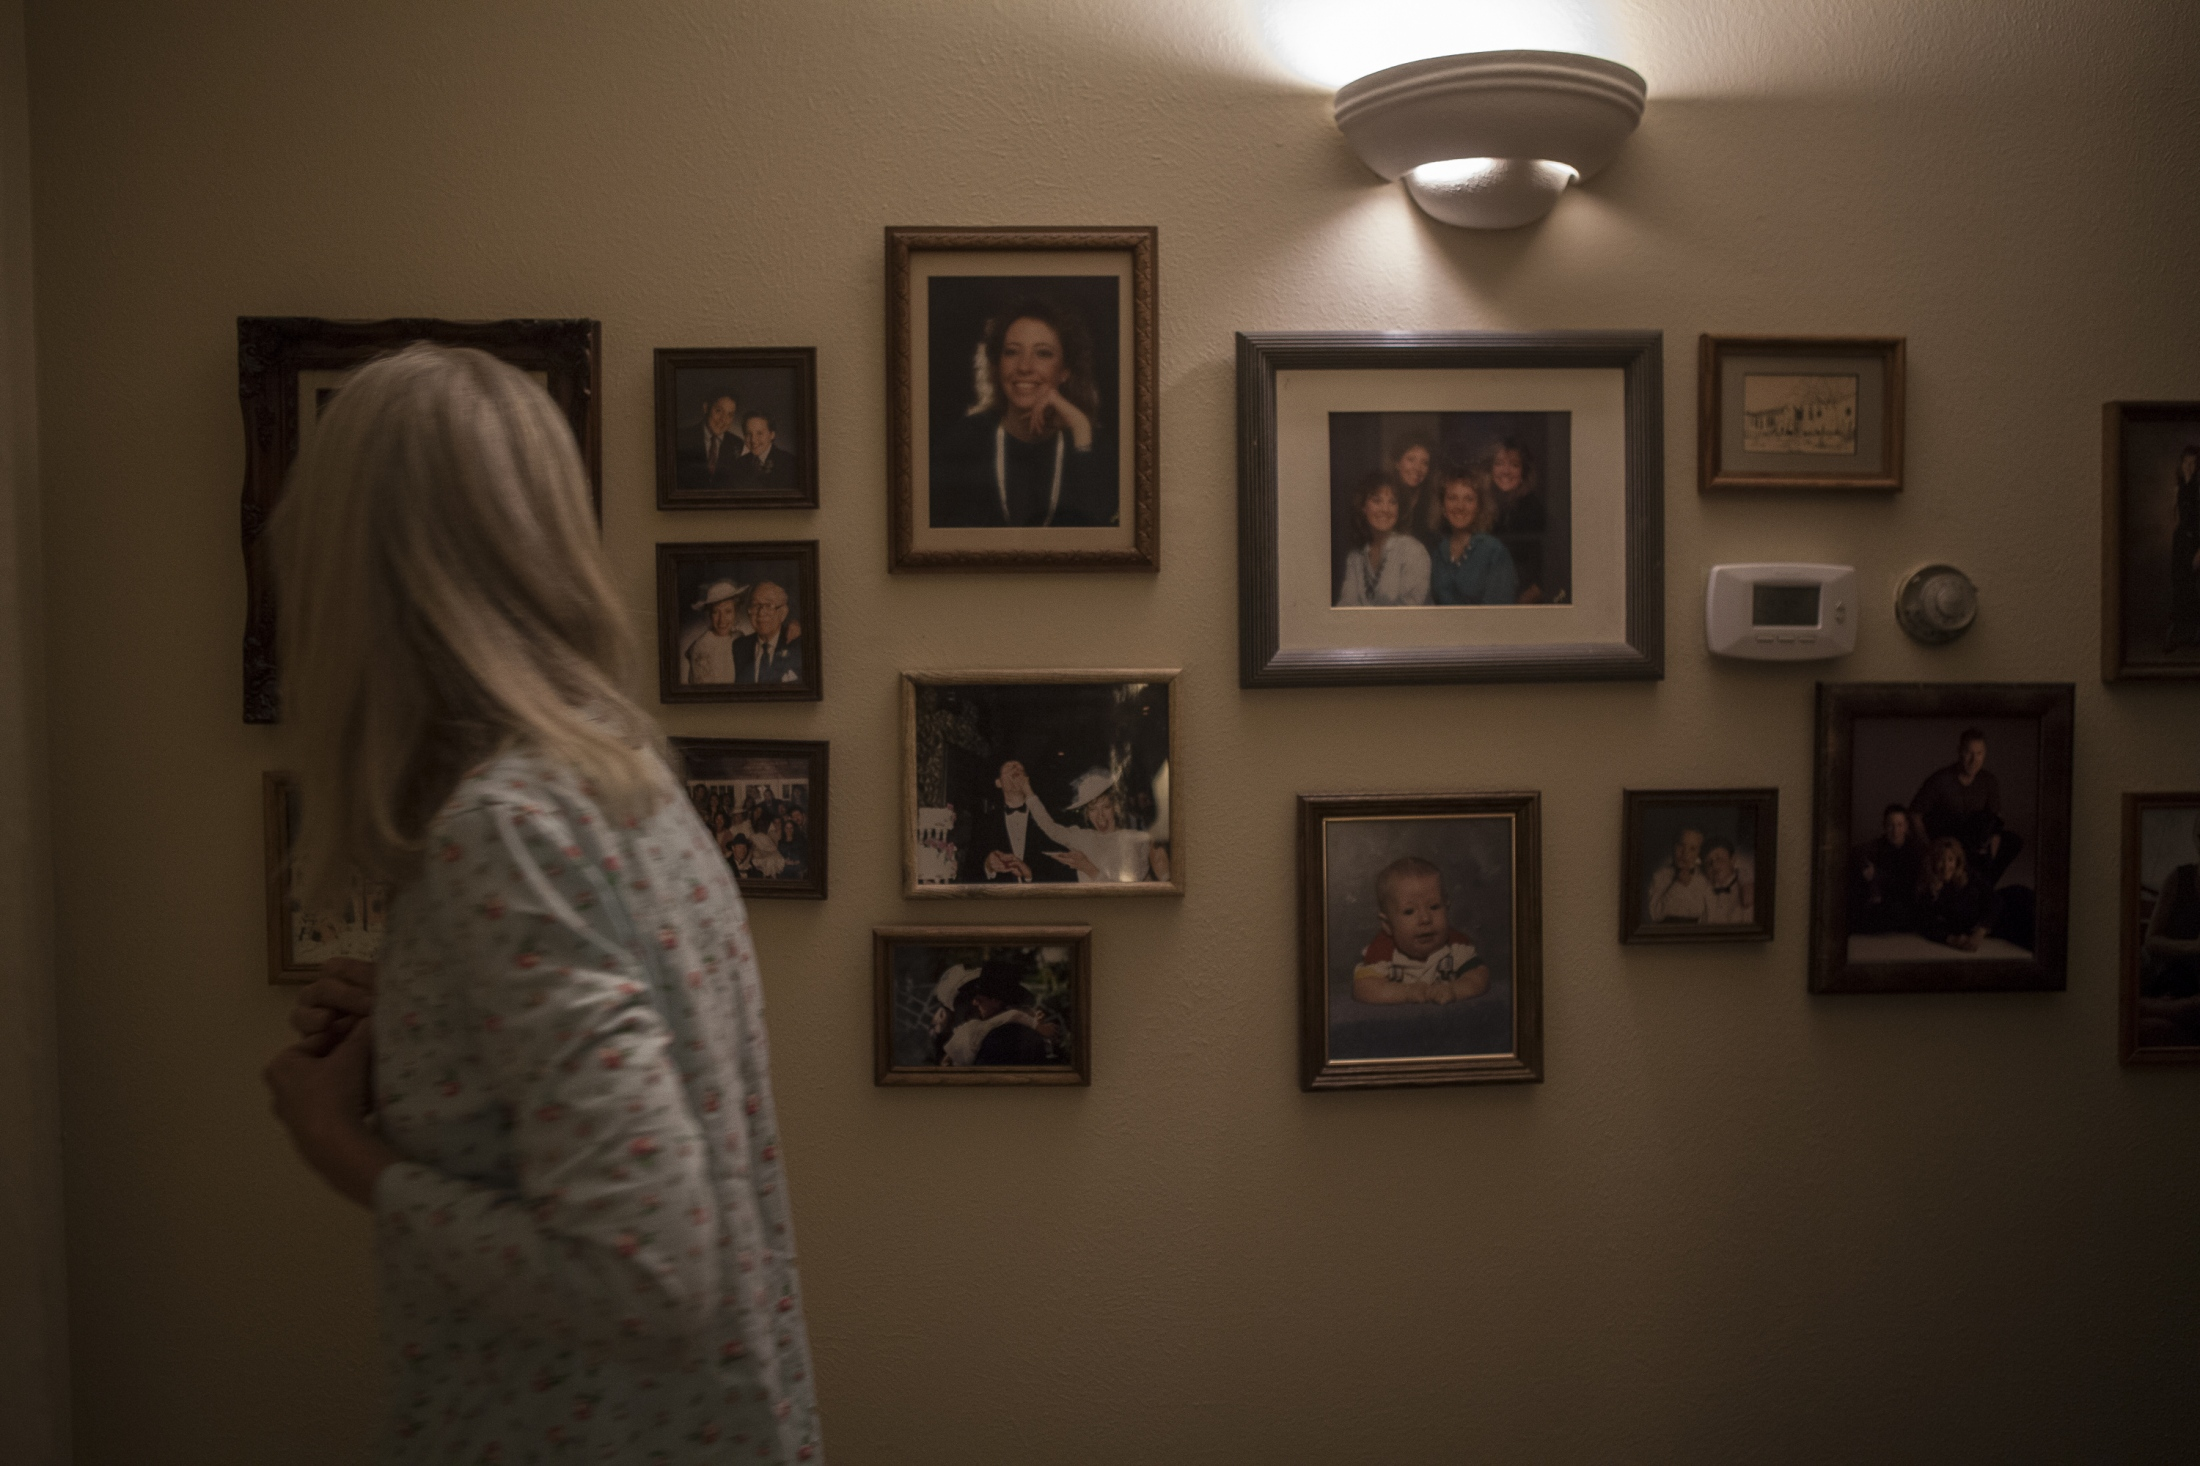 Nancy glances at photos of her and her family as she passes through the hallway of her and her husband's home.